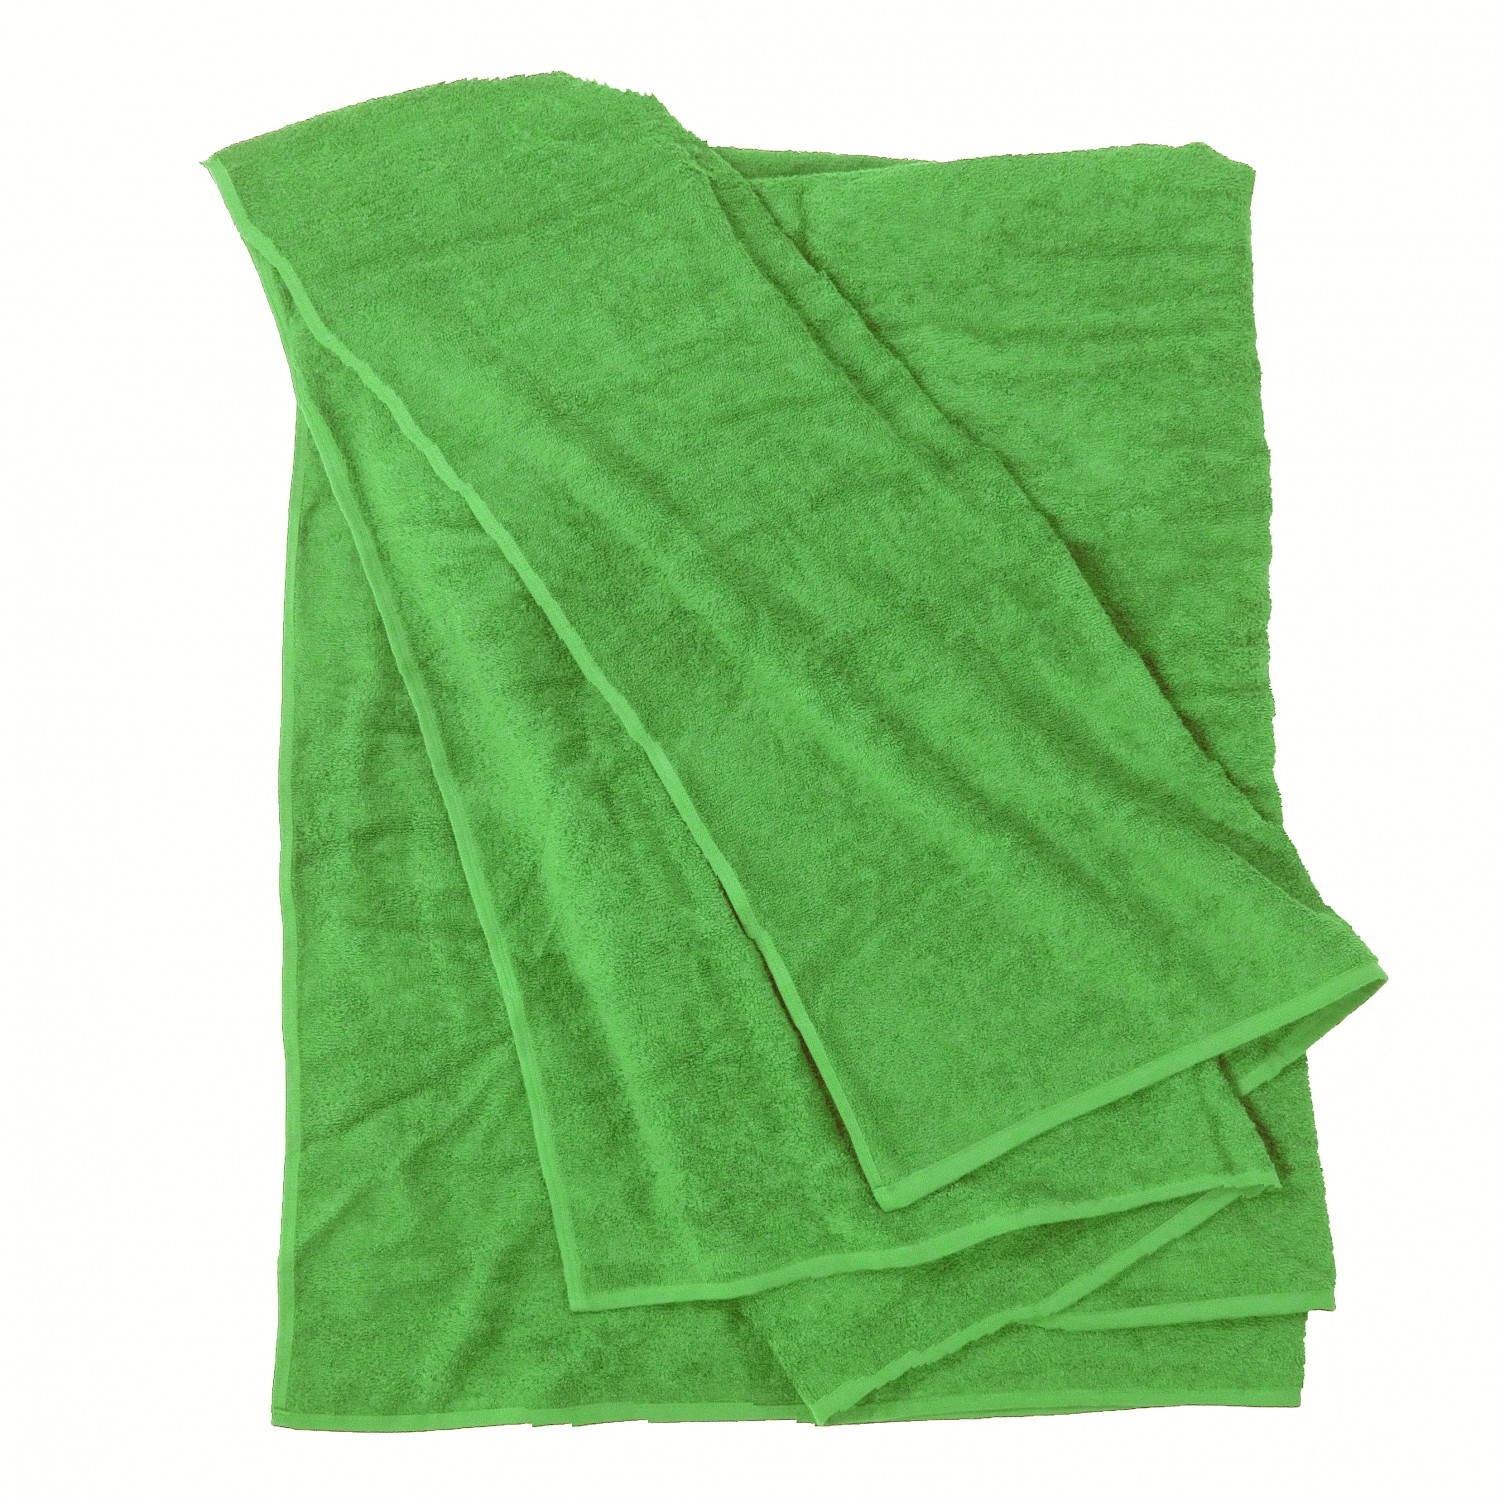 Detail Image to Bath towel in light green by Kapart in large sizes 100x220 cm and 155x220 cm